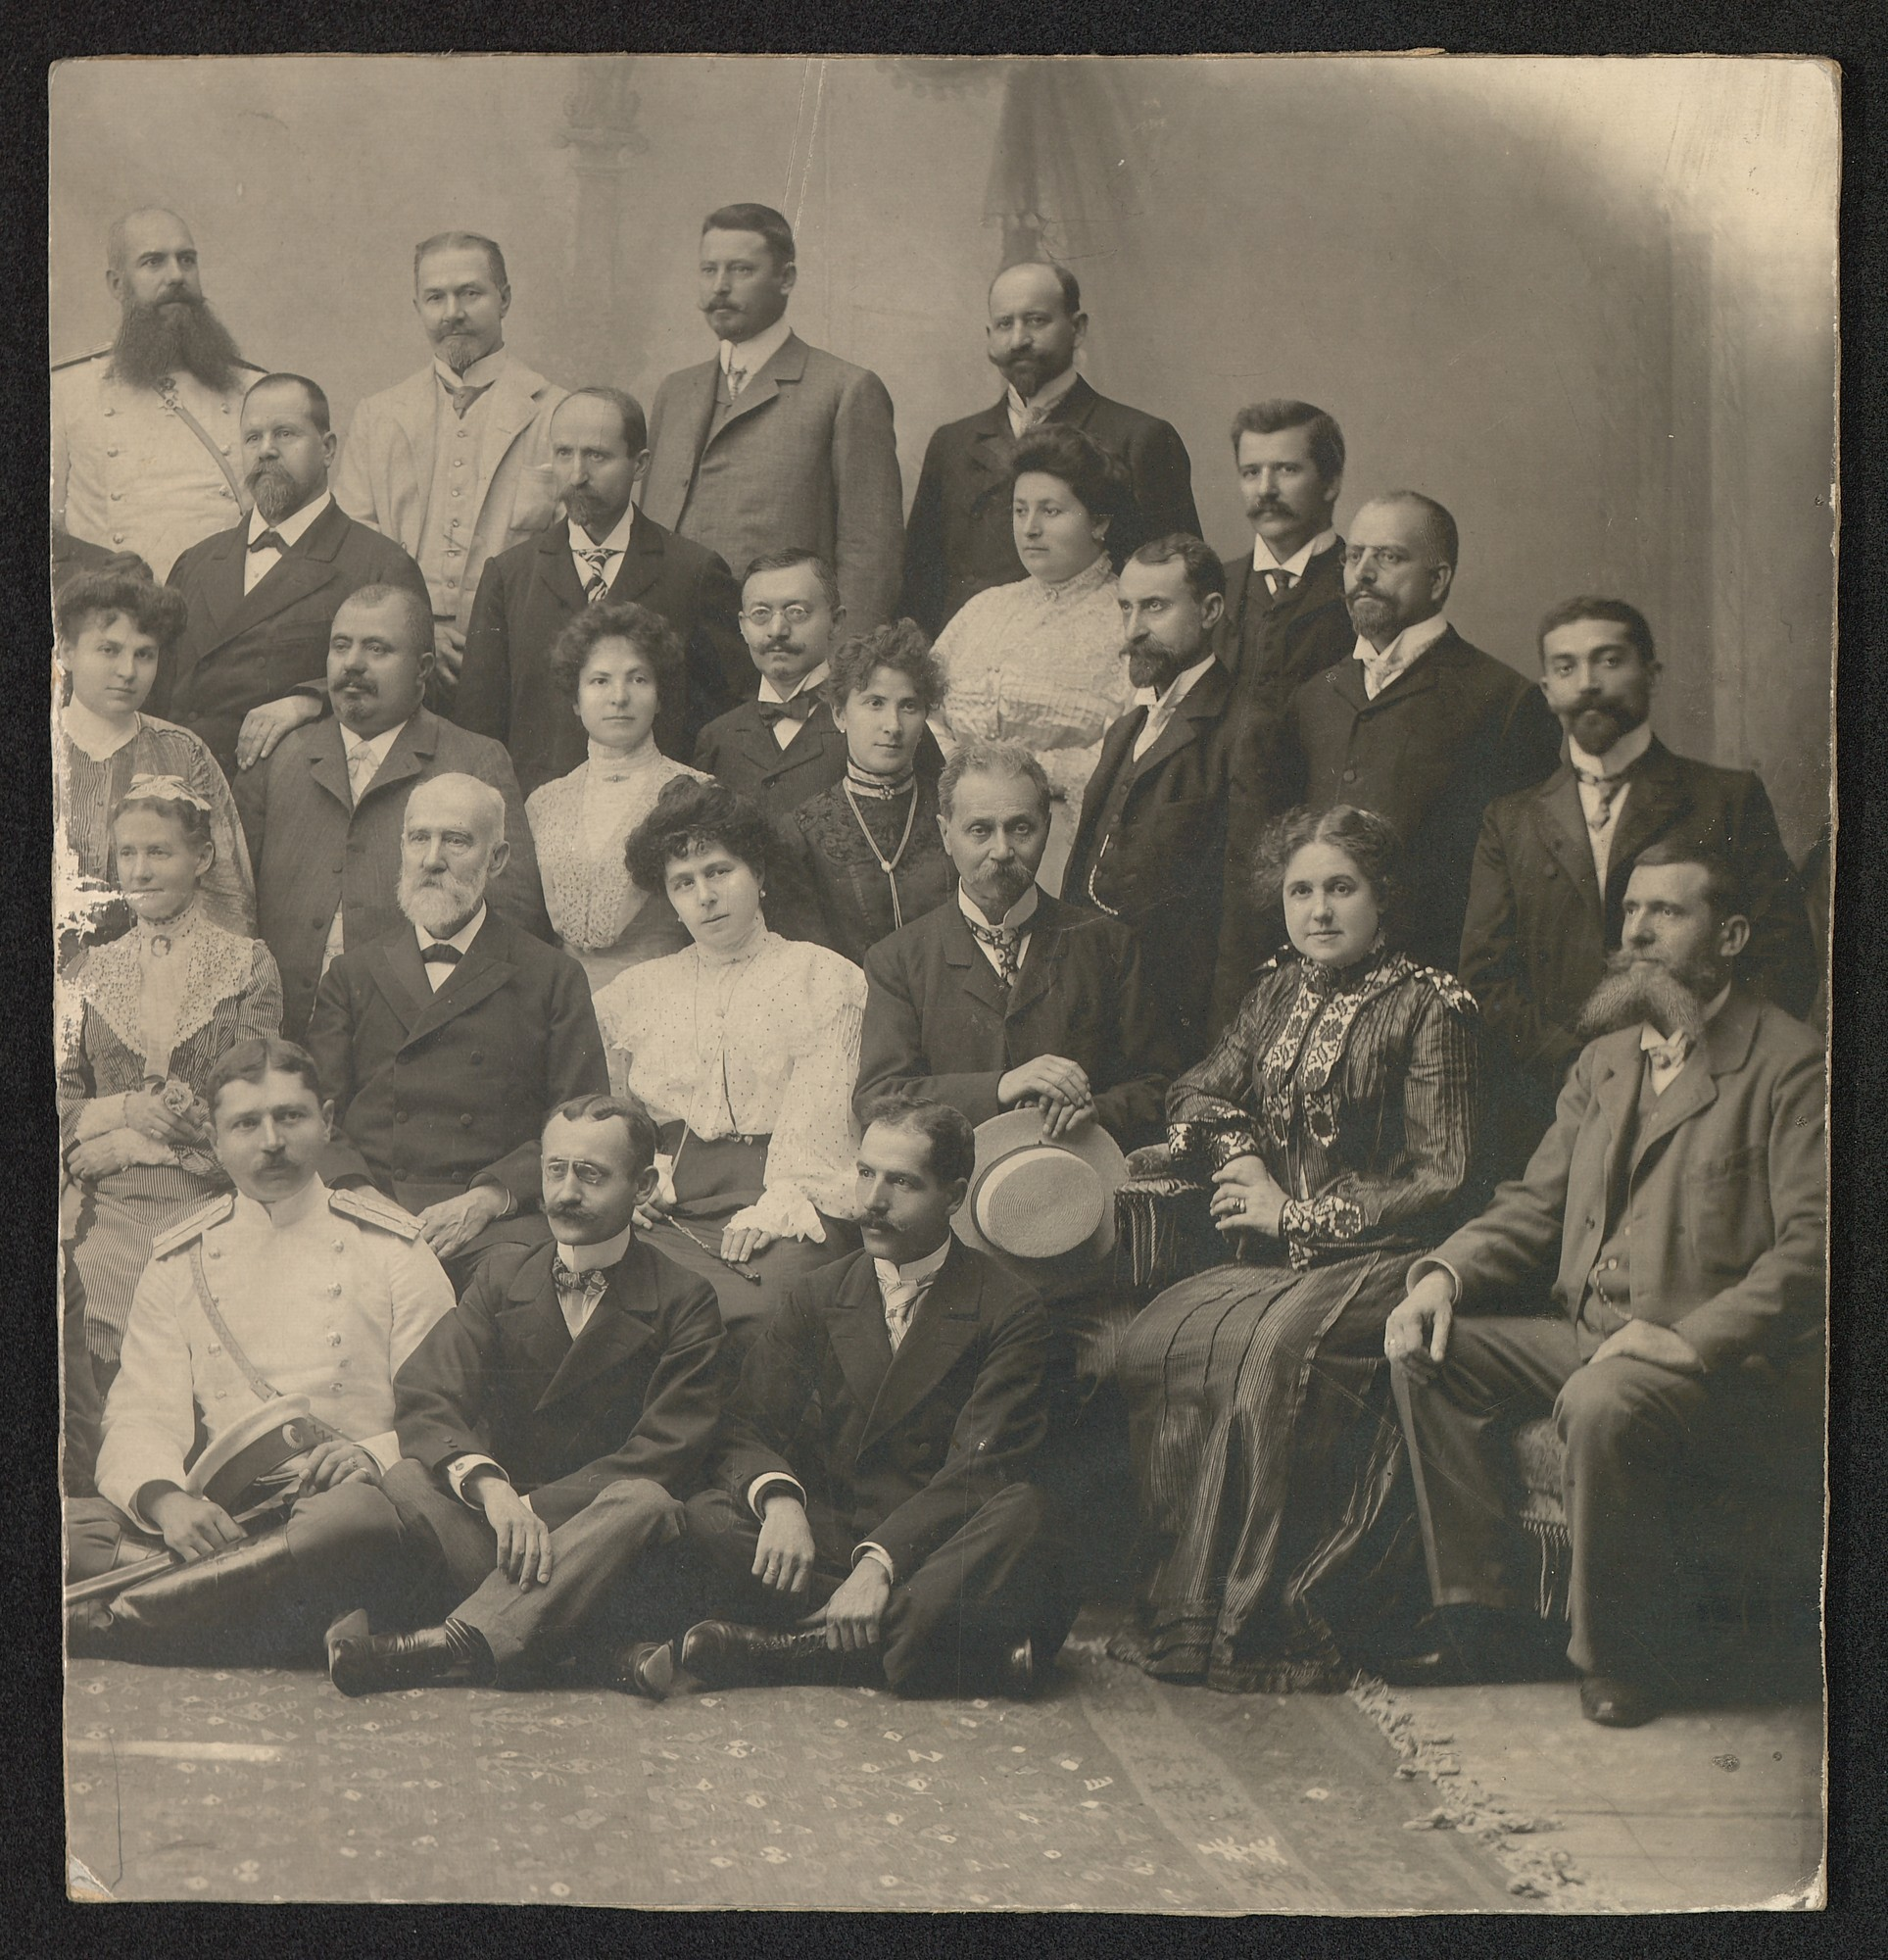 Group portrait of lecturers and students from Robert college, Tsarigrad/Istanbul, © St. Cyril and St. Methodius National Library